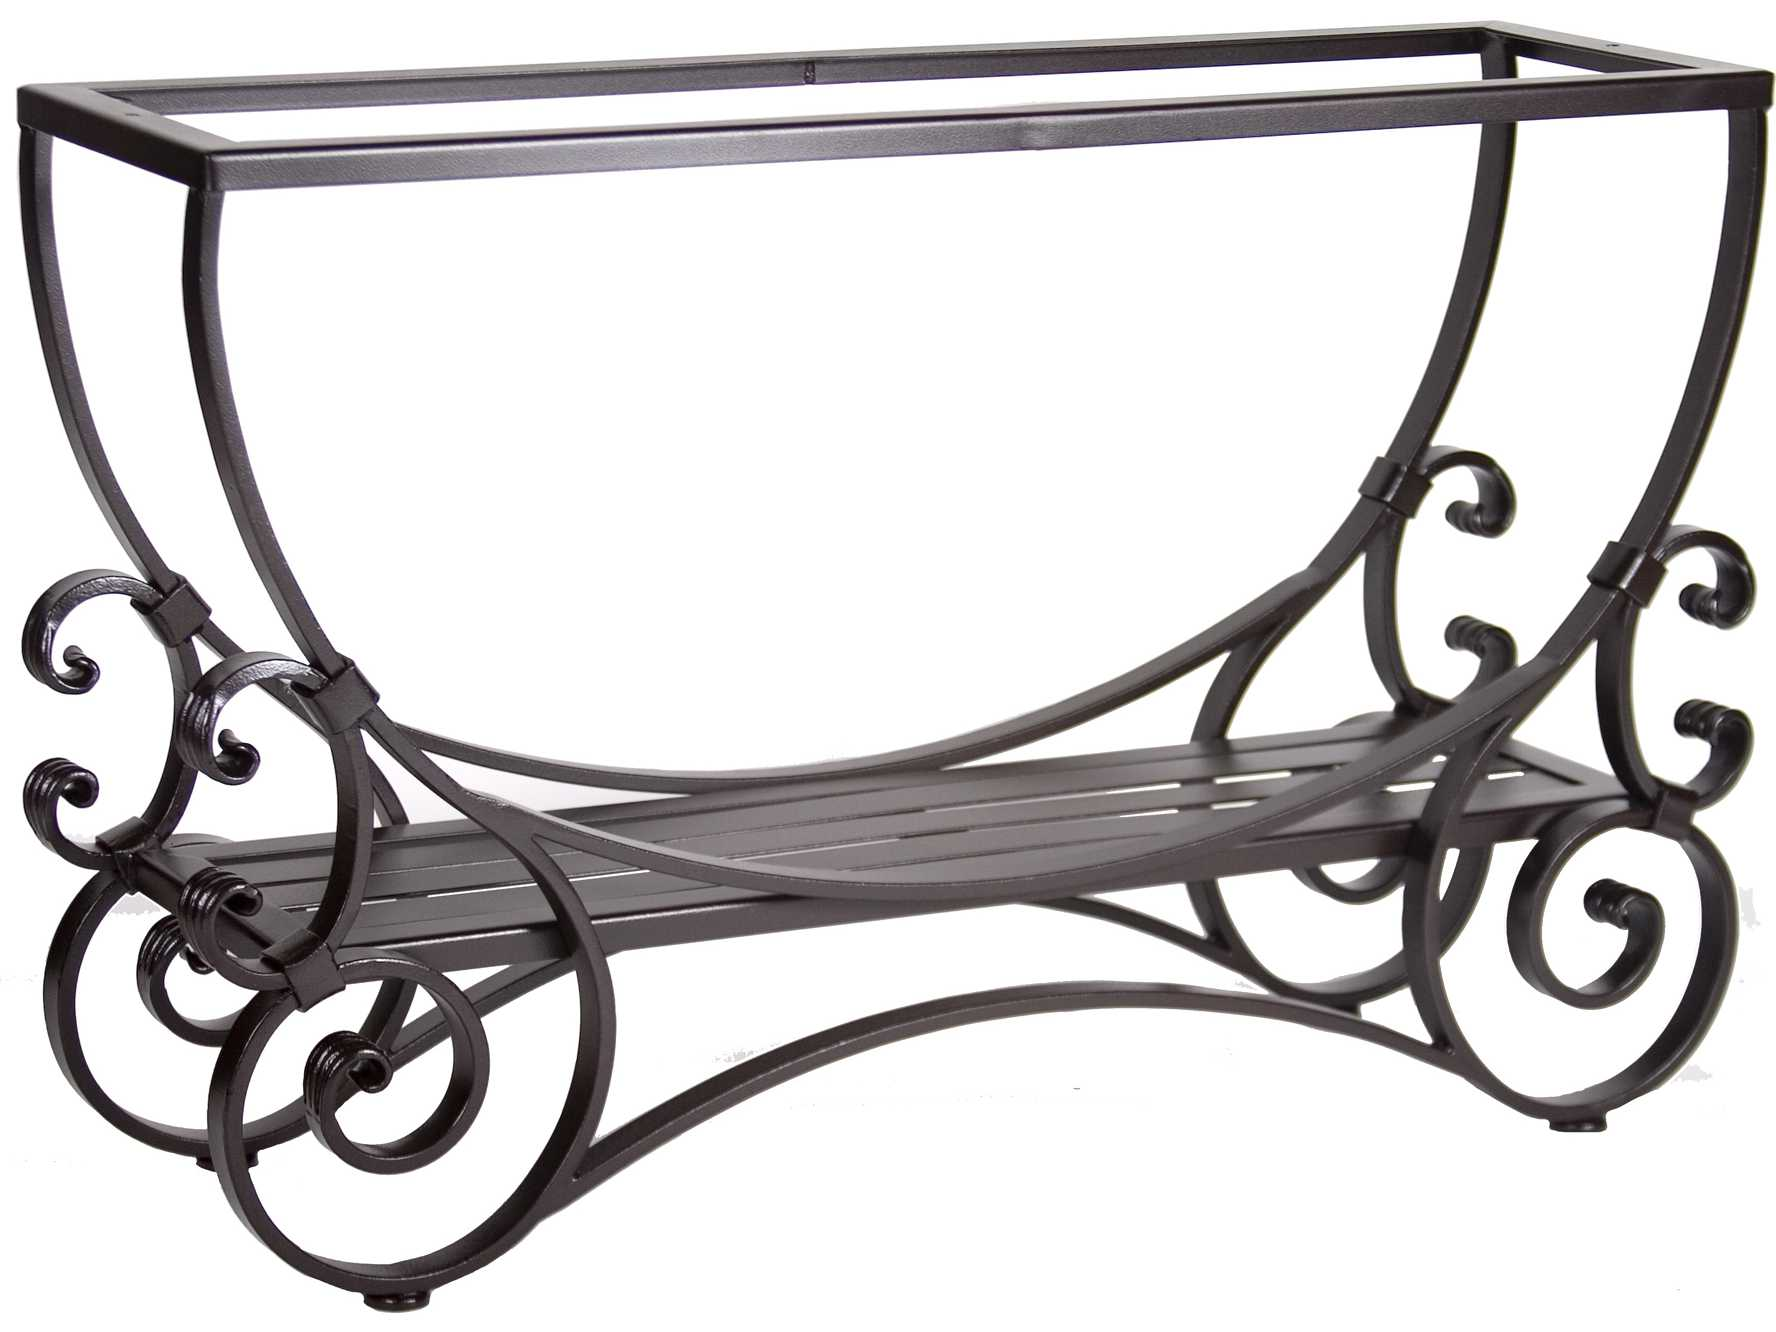 Ow lee san cristobal wrought iron 46 x 14 rectangular for Outdoor table bases wrought iron